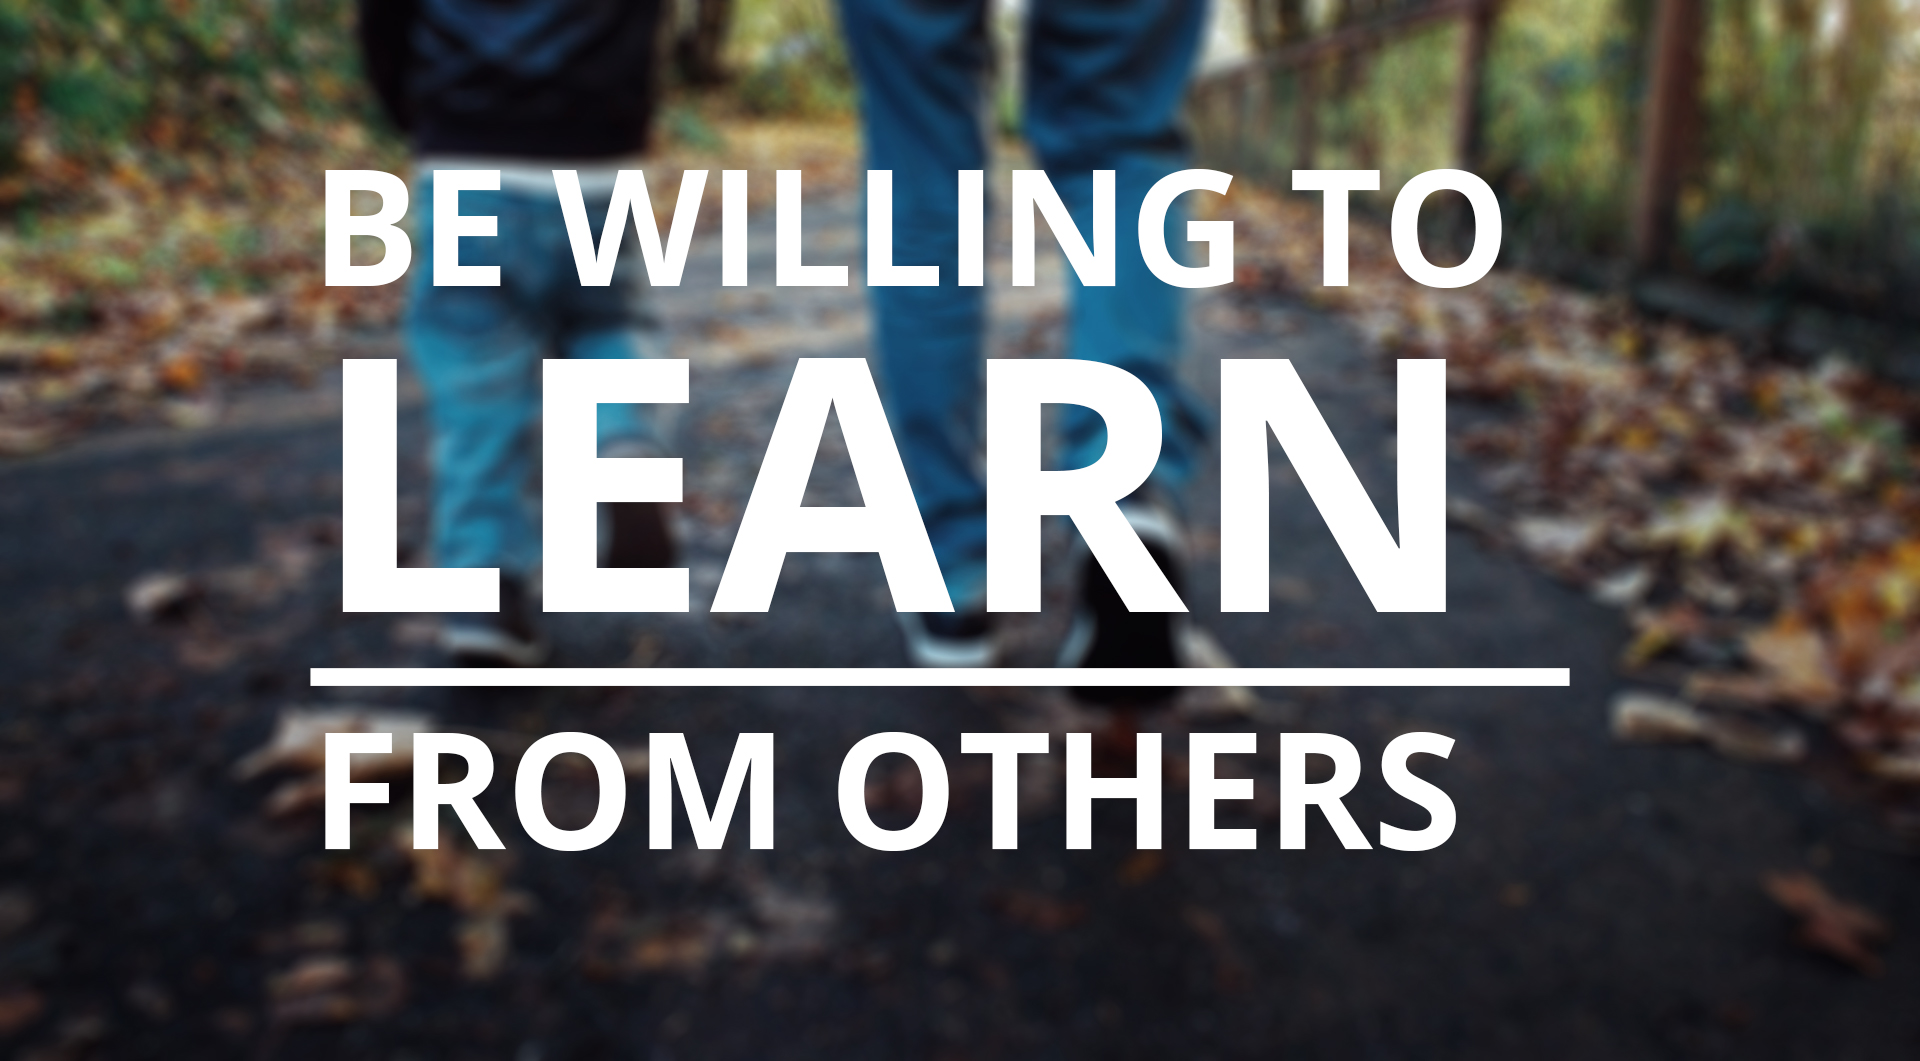 Learn-from-others